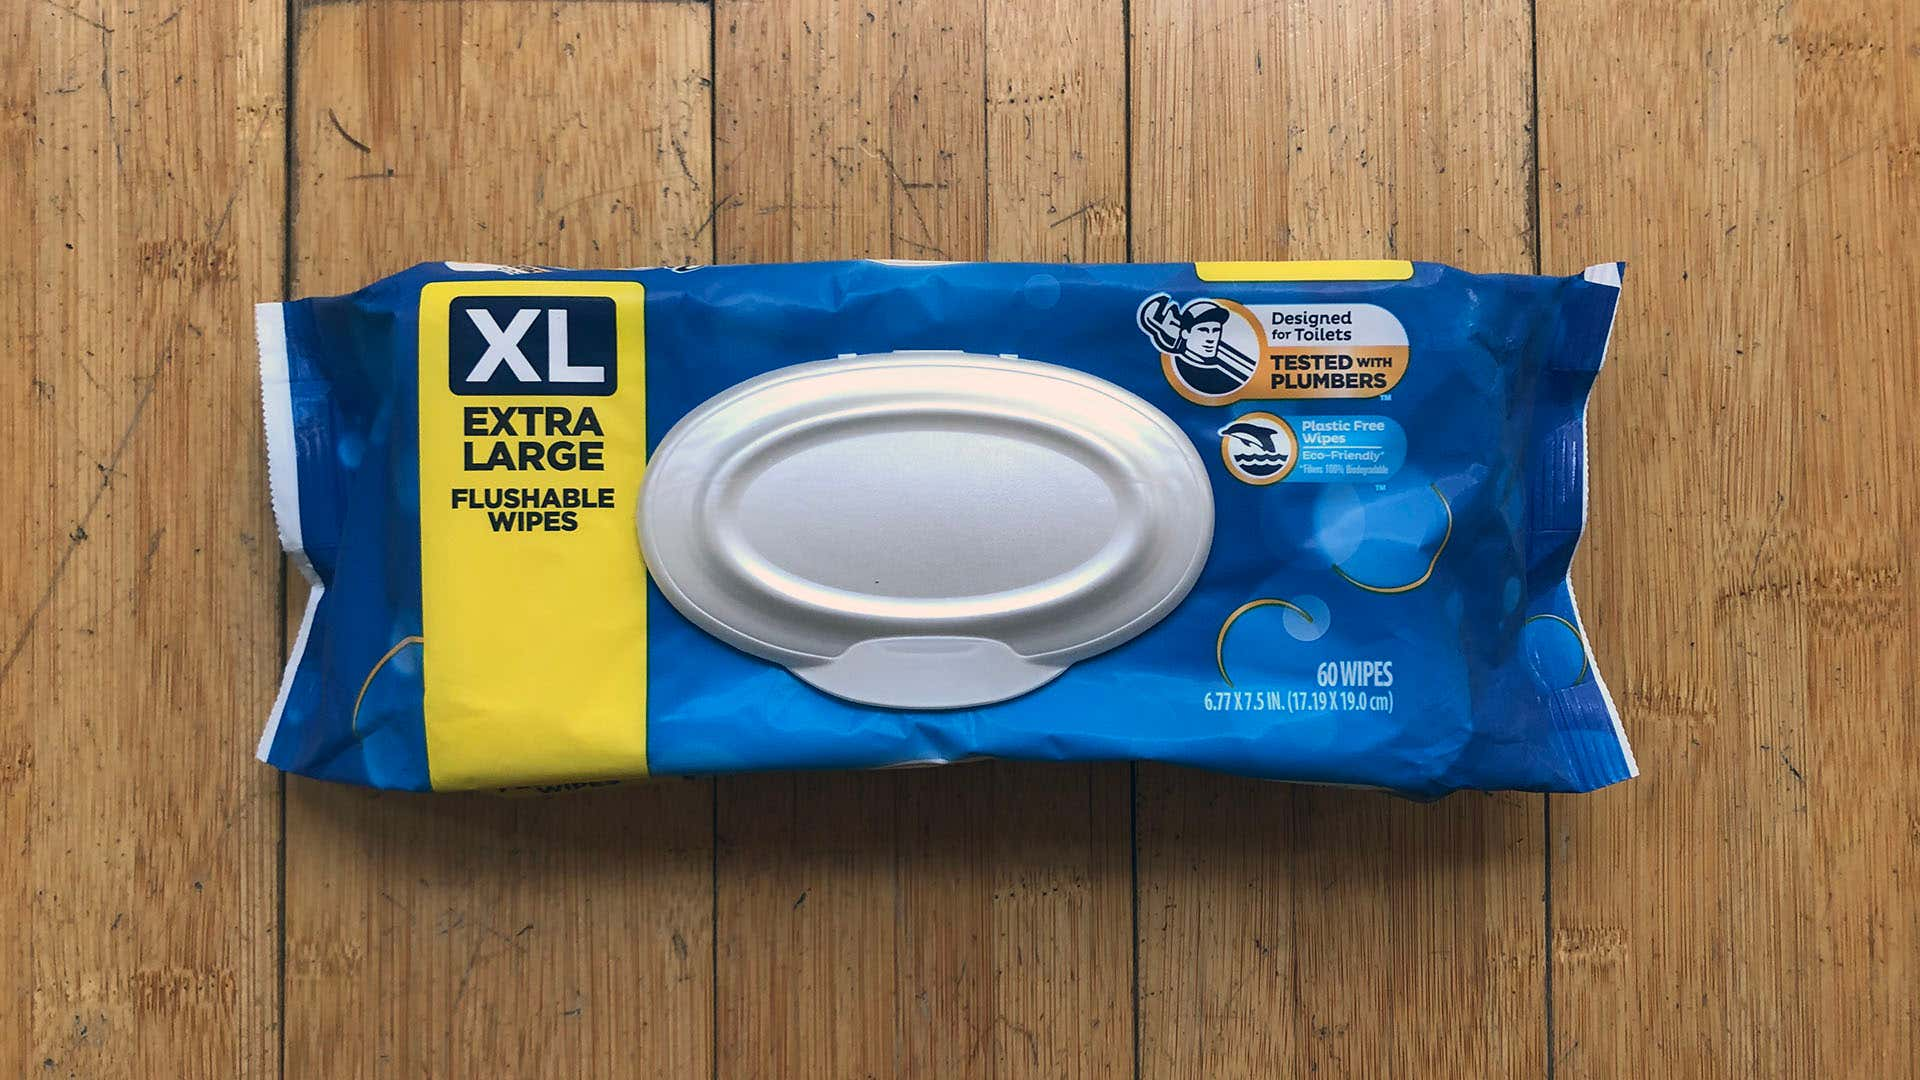 Wet wipes allow for longer time without a shower.